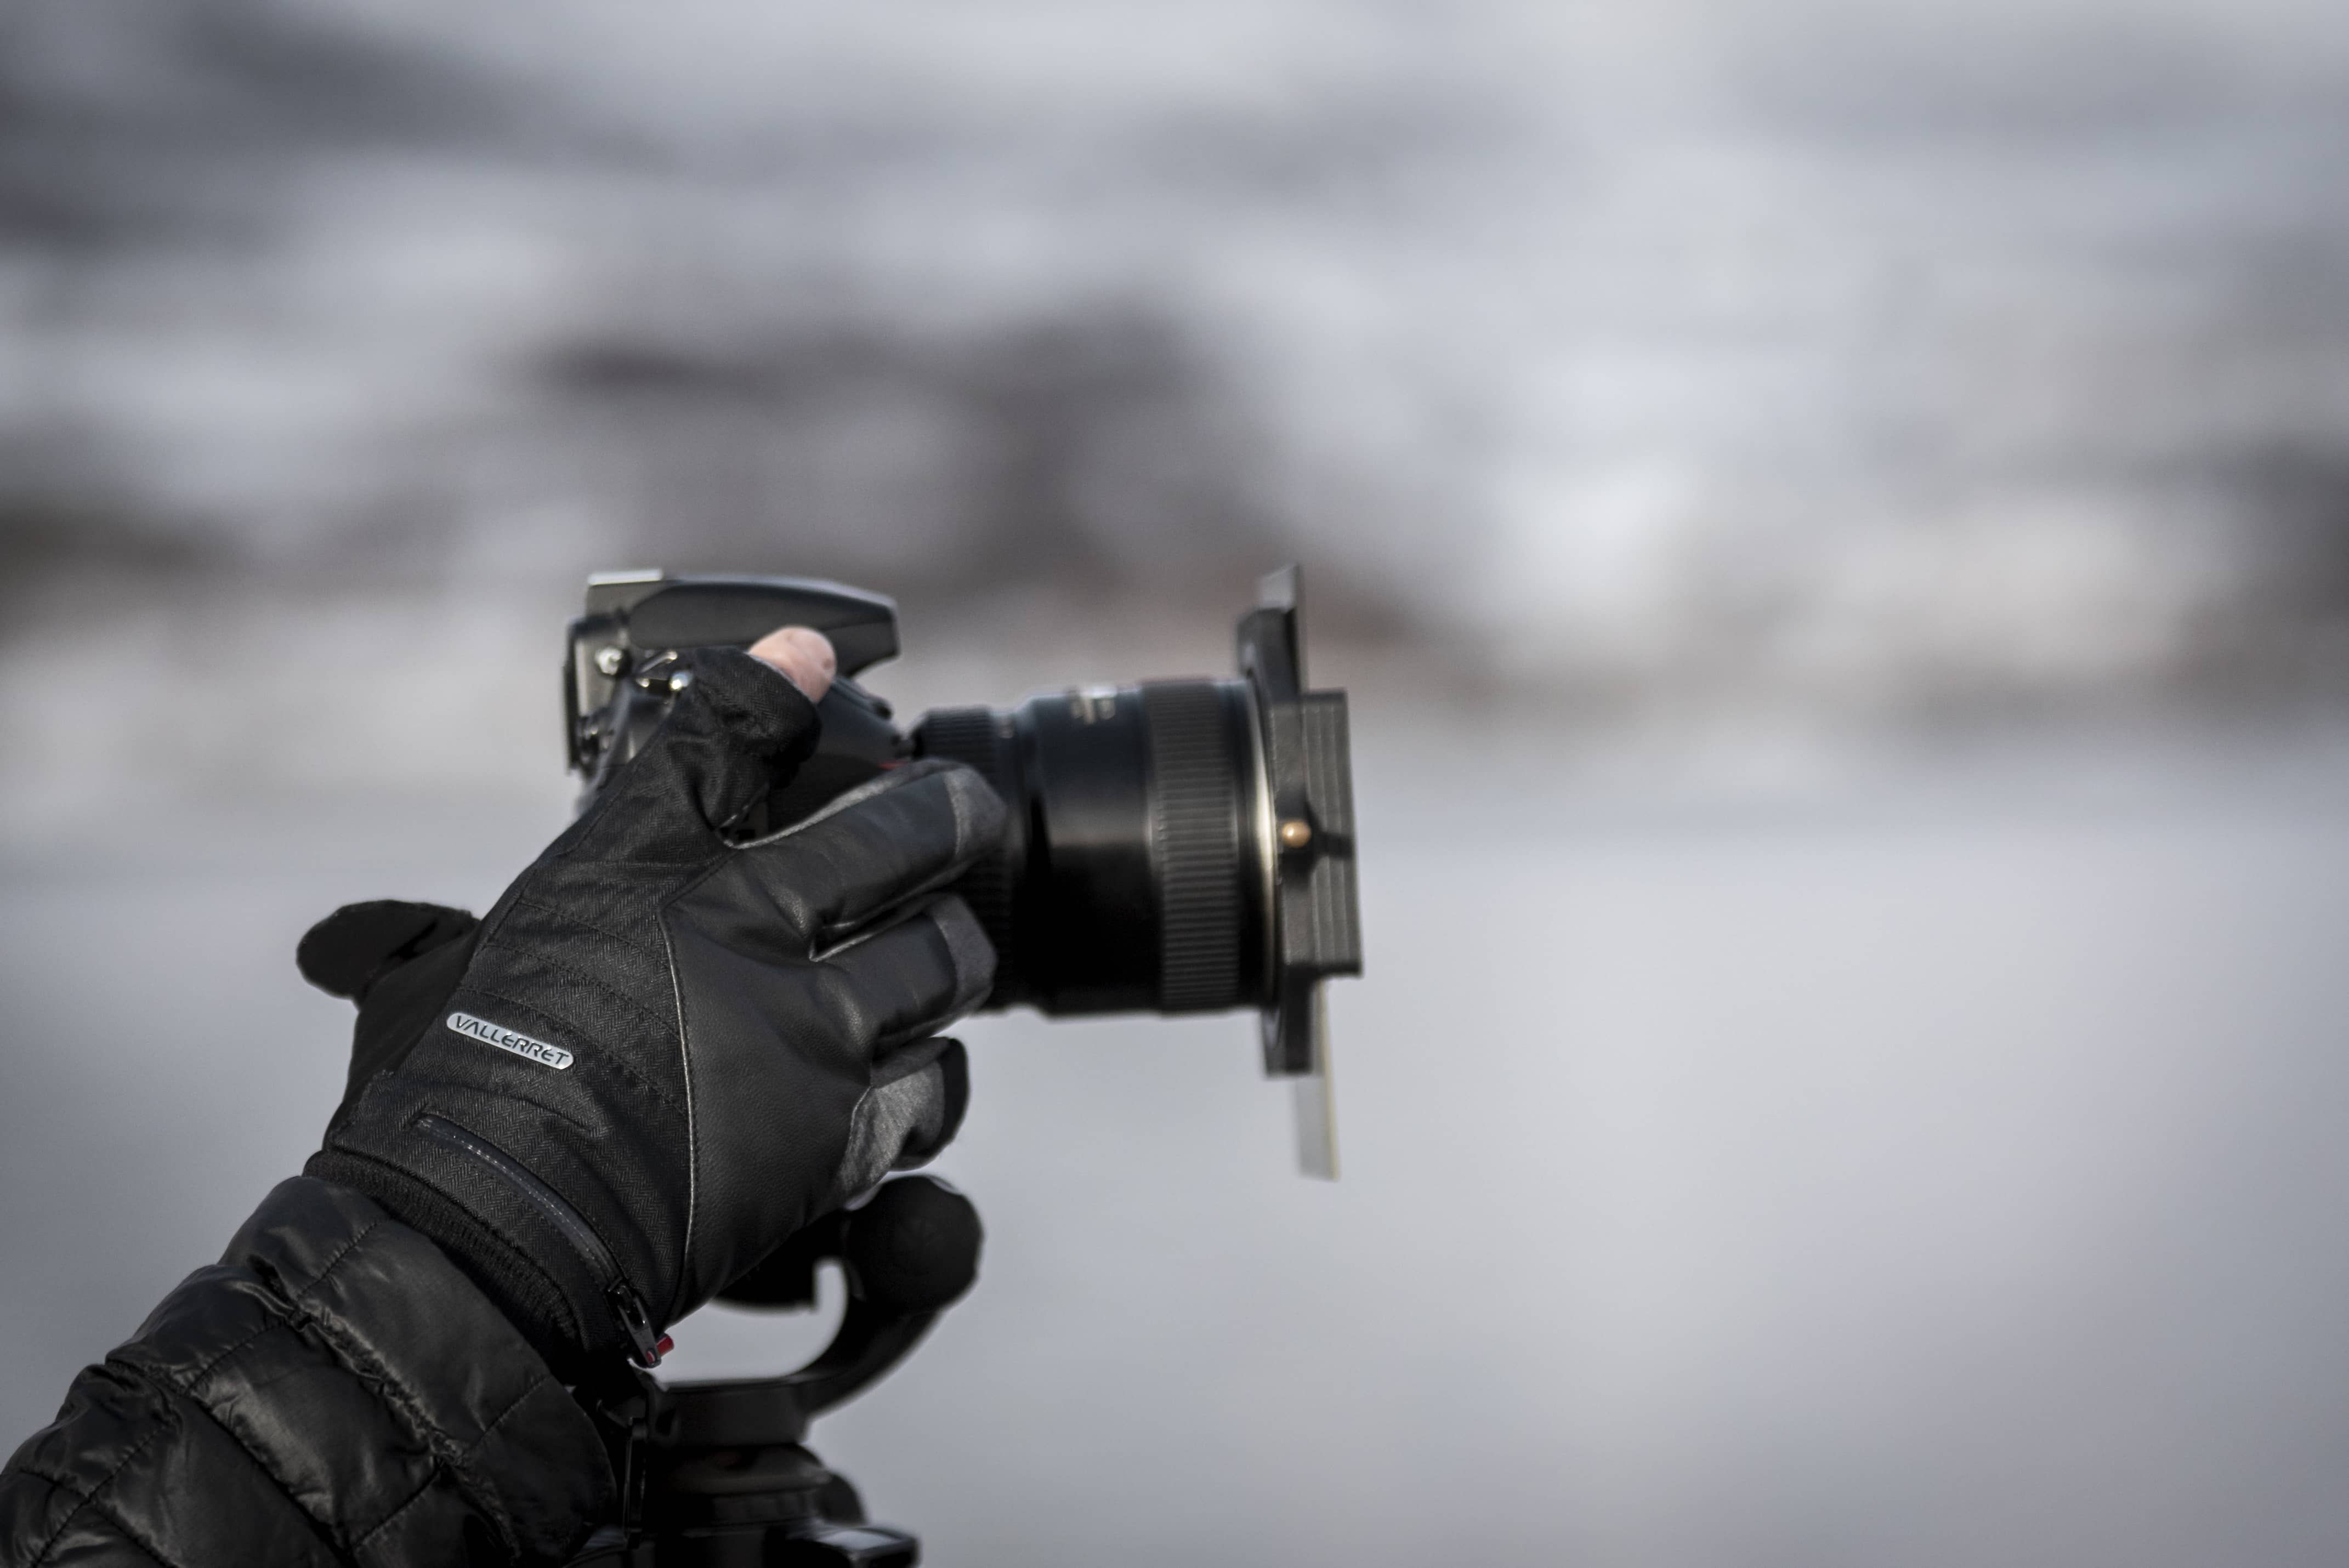 Camera with filter for winter photography